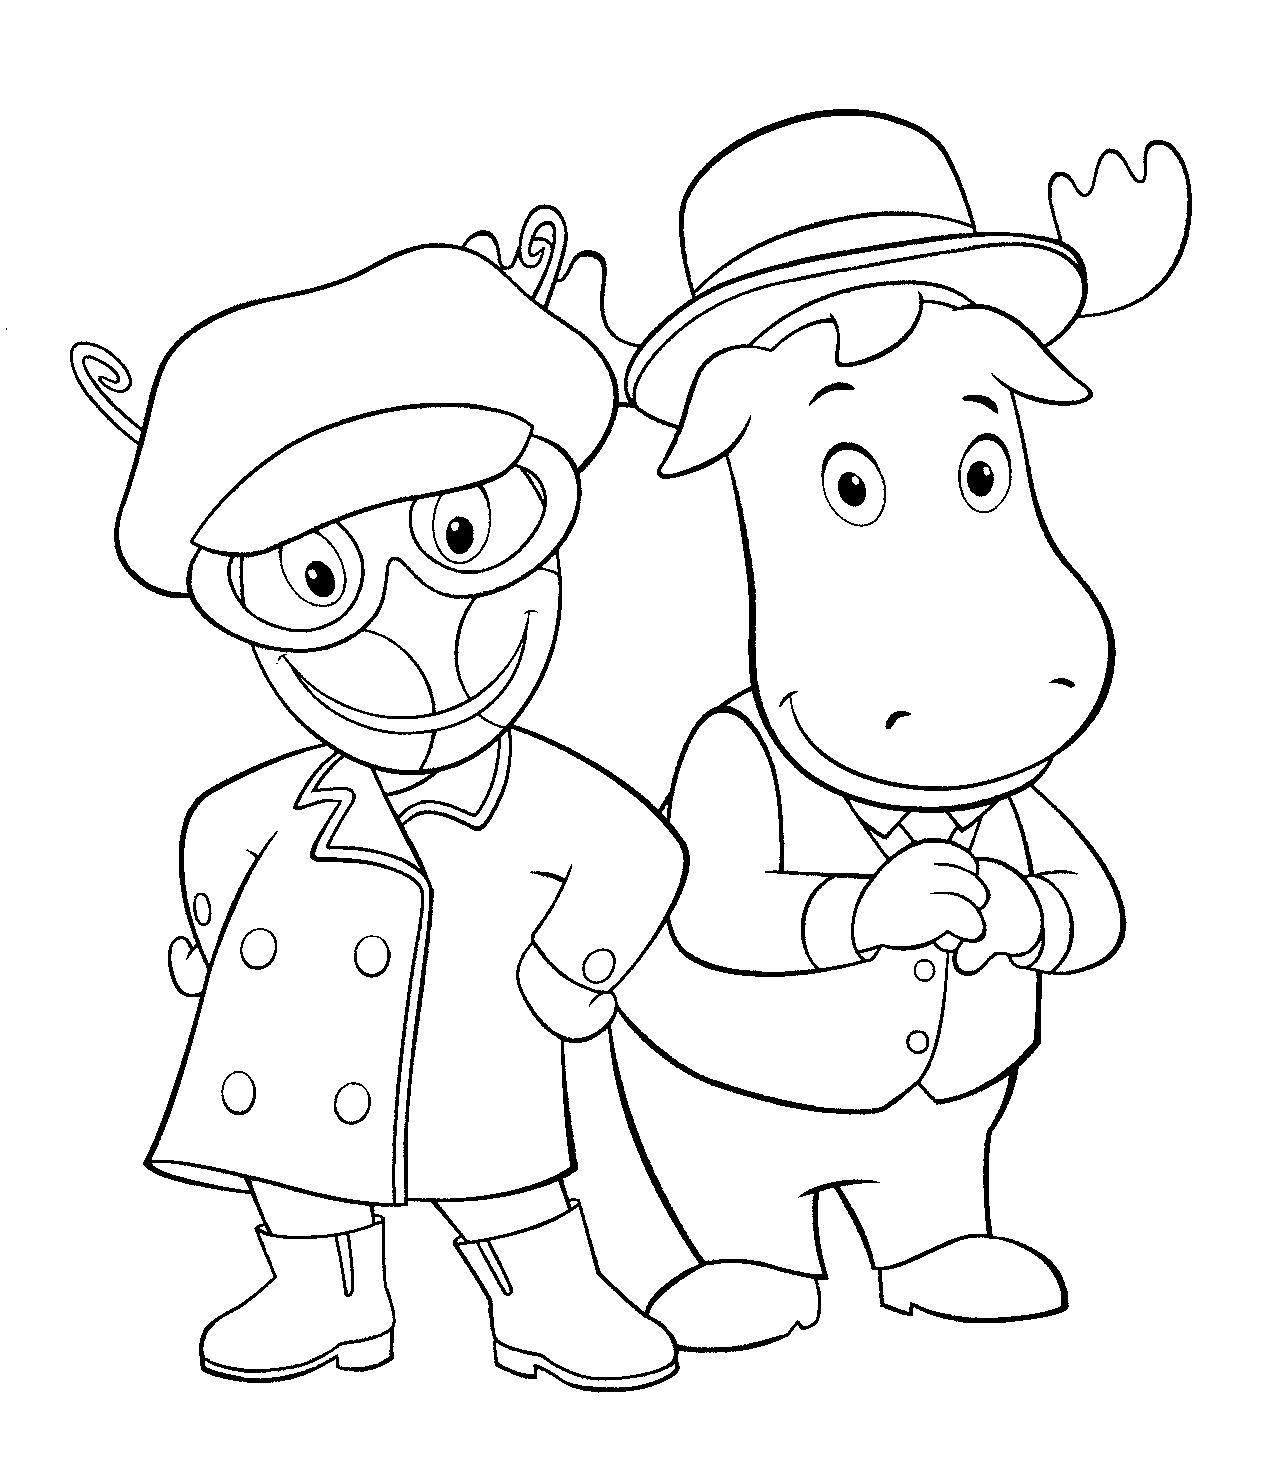 printalbe coloring pages - photo#13